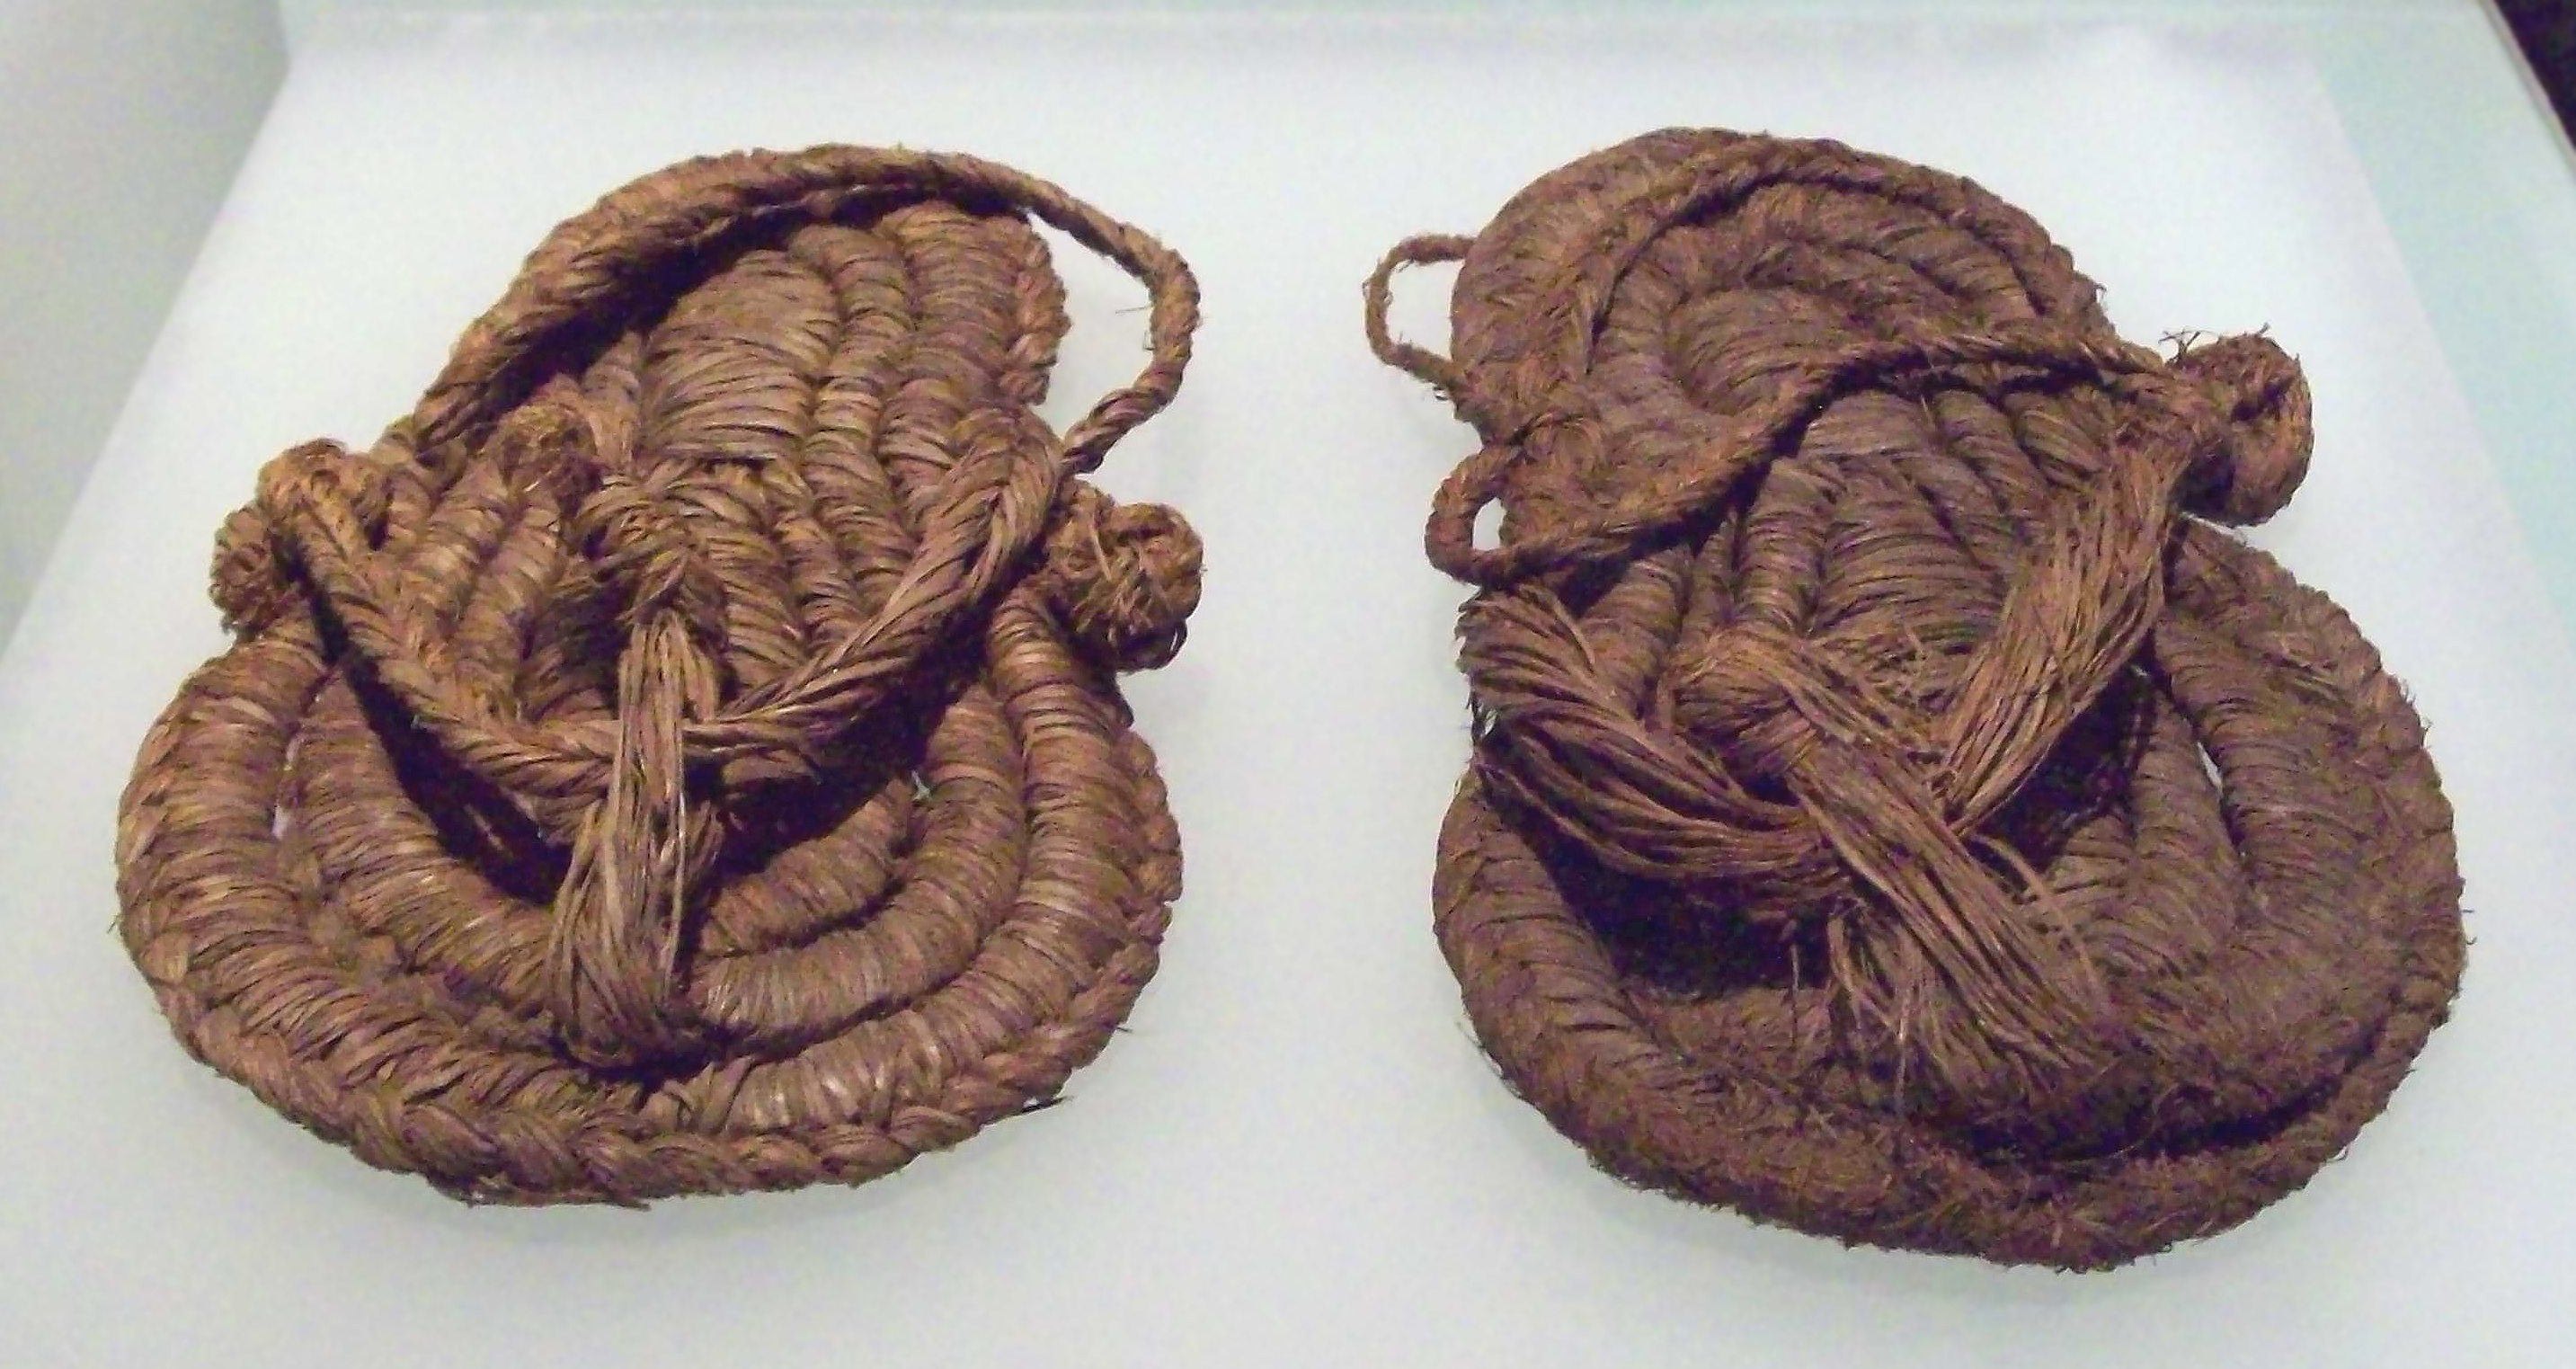 <strong>Ancient sandals (6,000 BC)</strong>